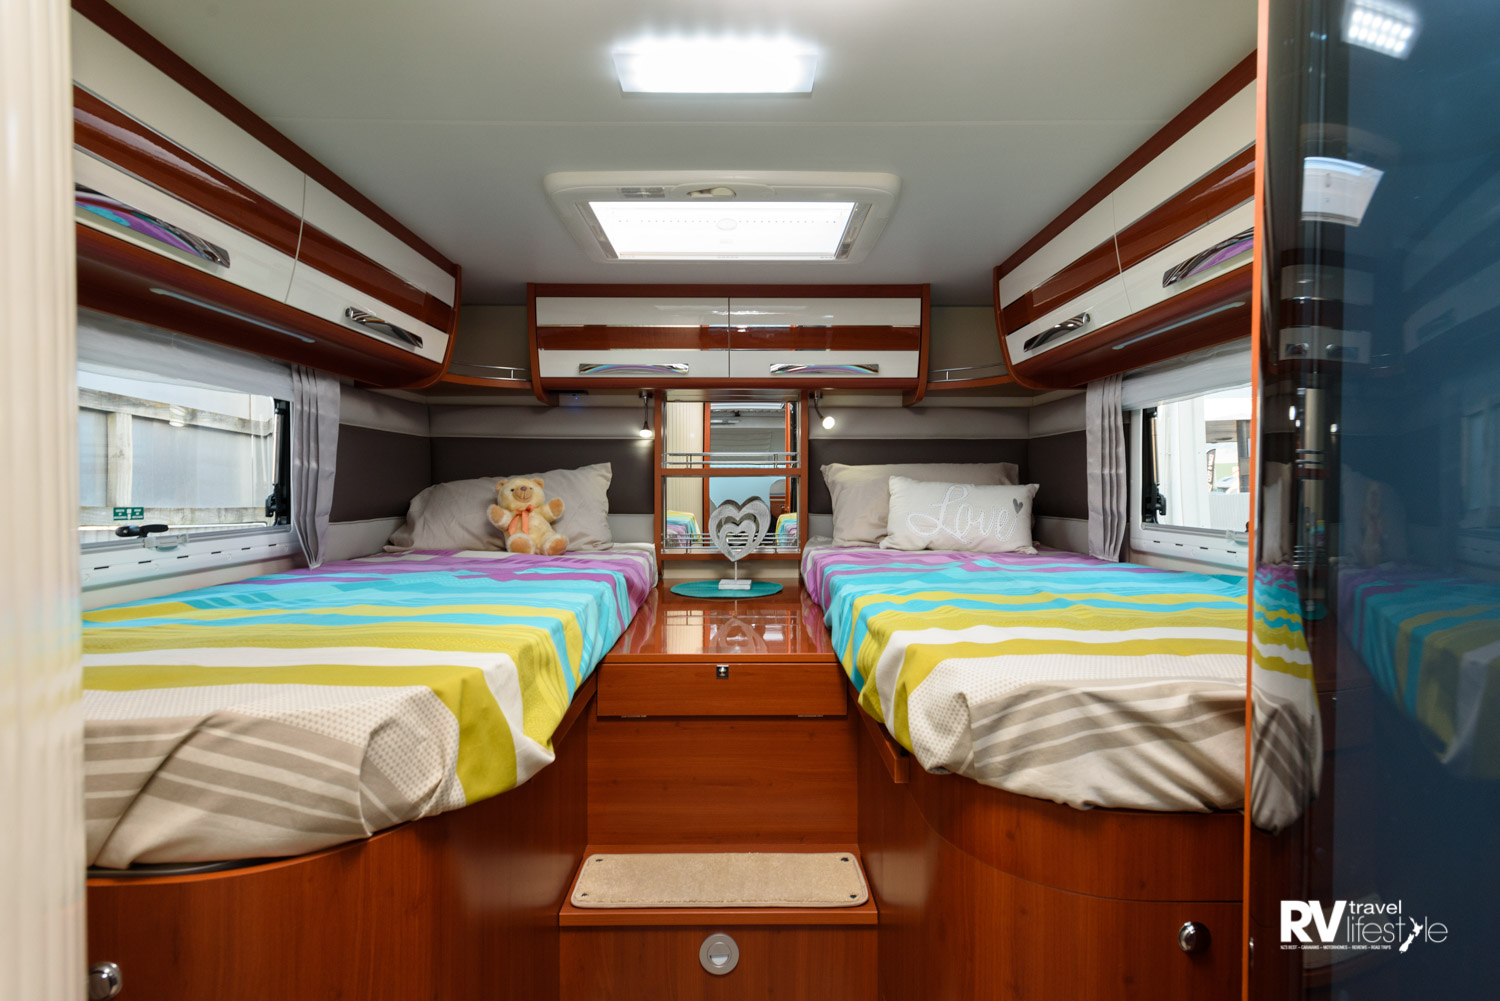 K-Yacht 85 has the two single beds 820x1920mm, and the large exterior locker storage underneath. Plenty of interior storage with overhead lockers, drawers, shelving and wardrobe space